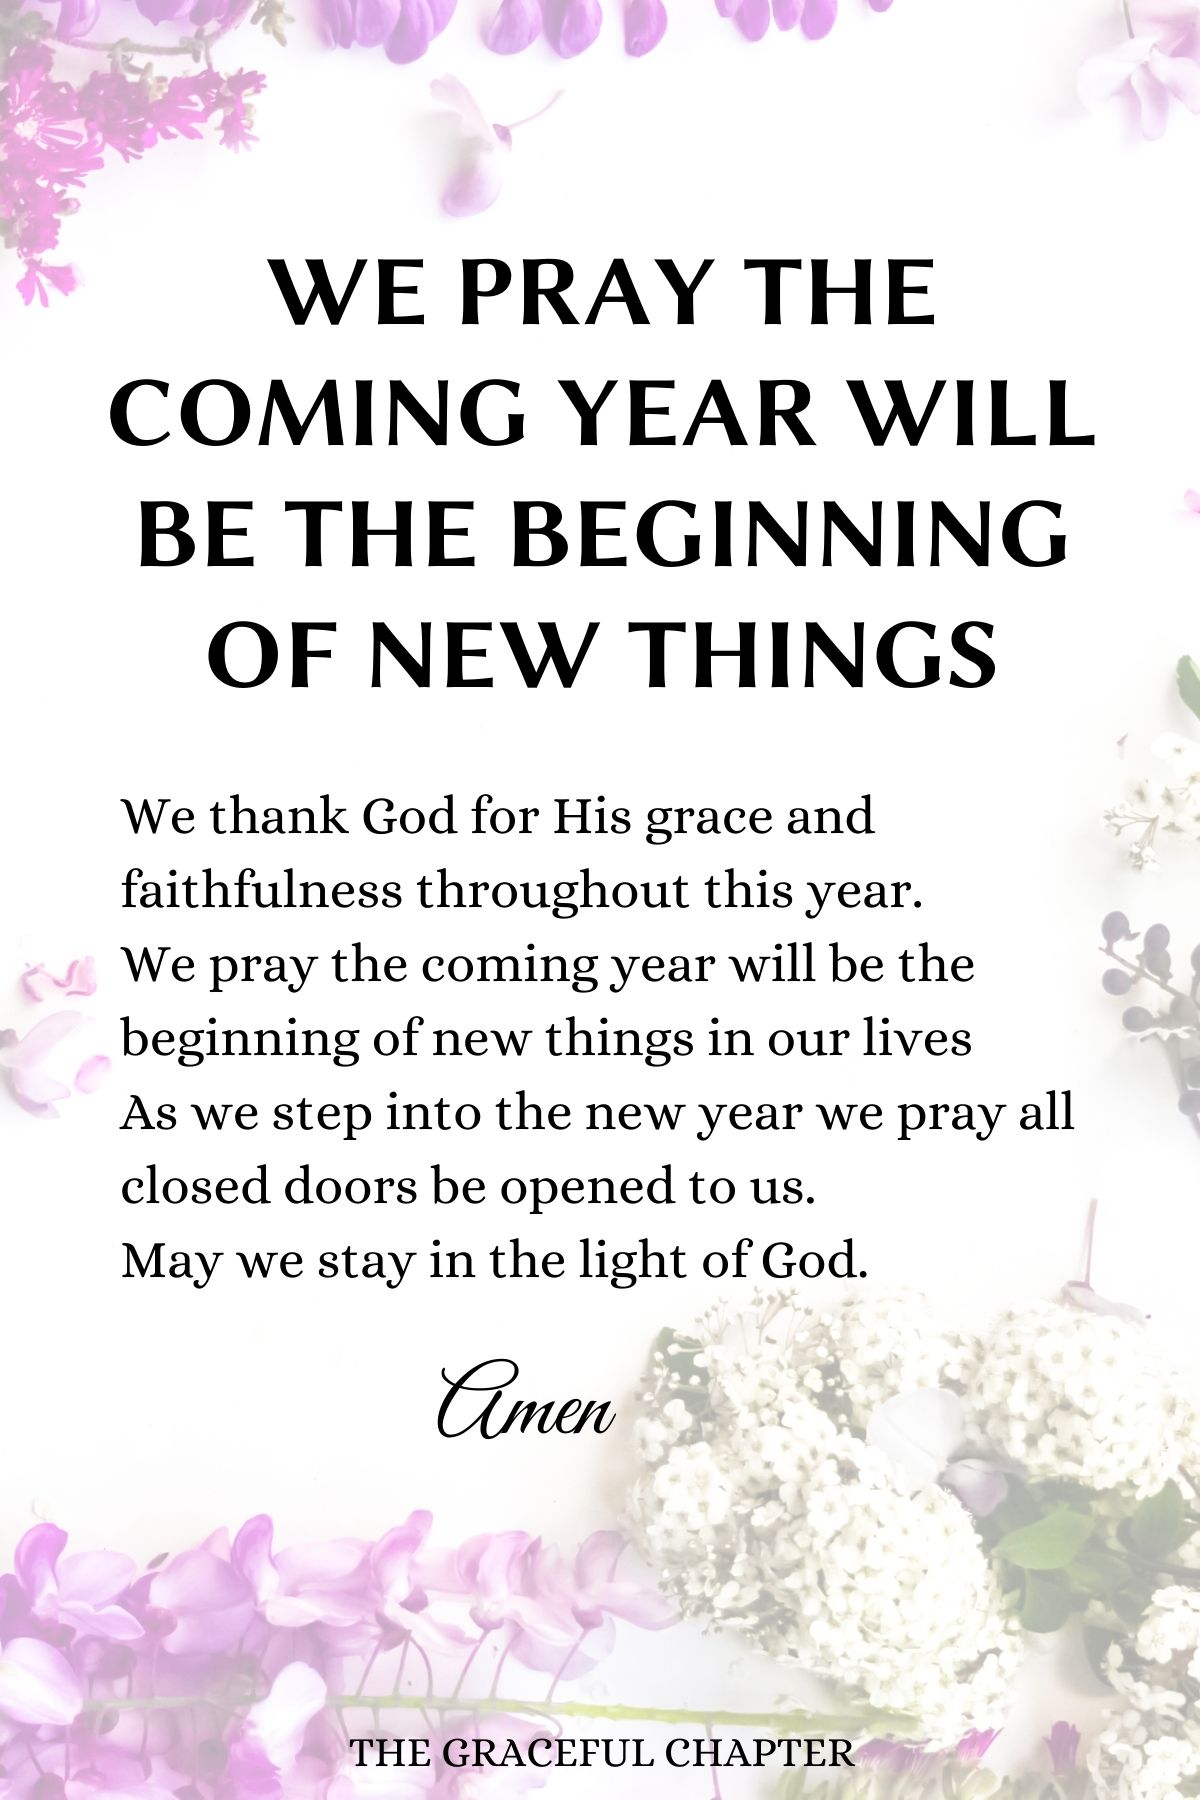 We pray the coming year will be the beginning of new things